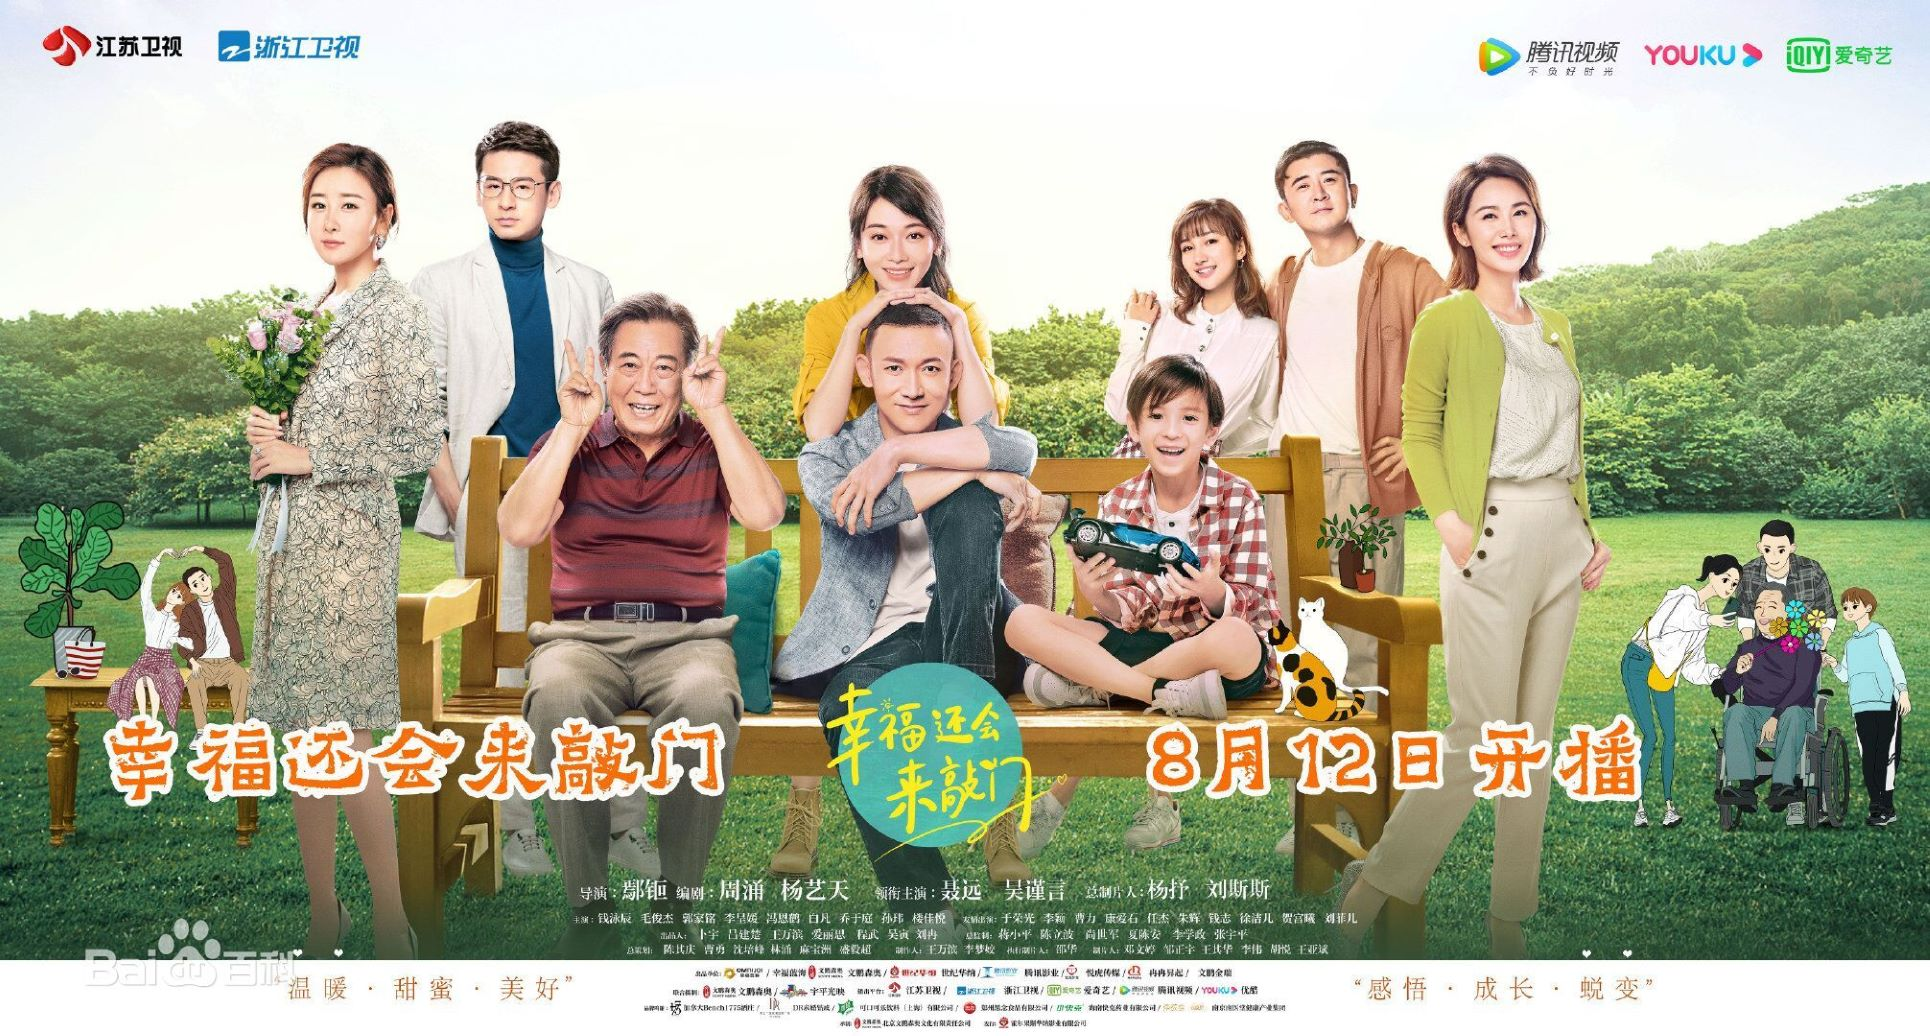 Happiness Will Come Knocking Again (Drama China) : Sinopsis dan Review